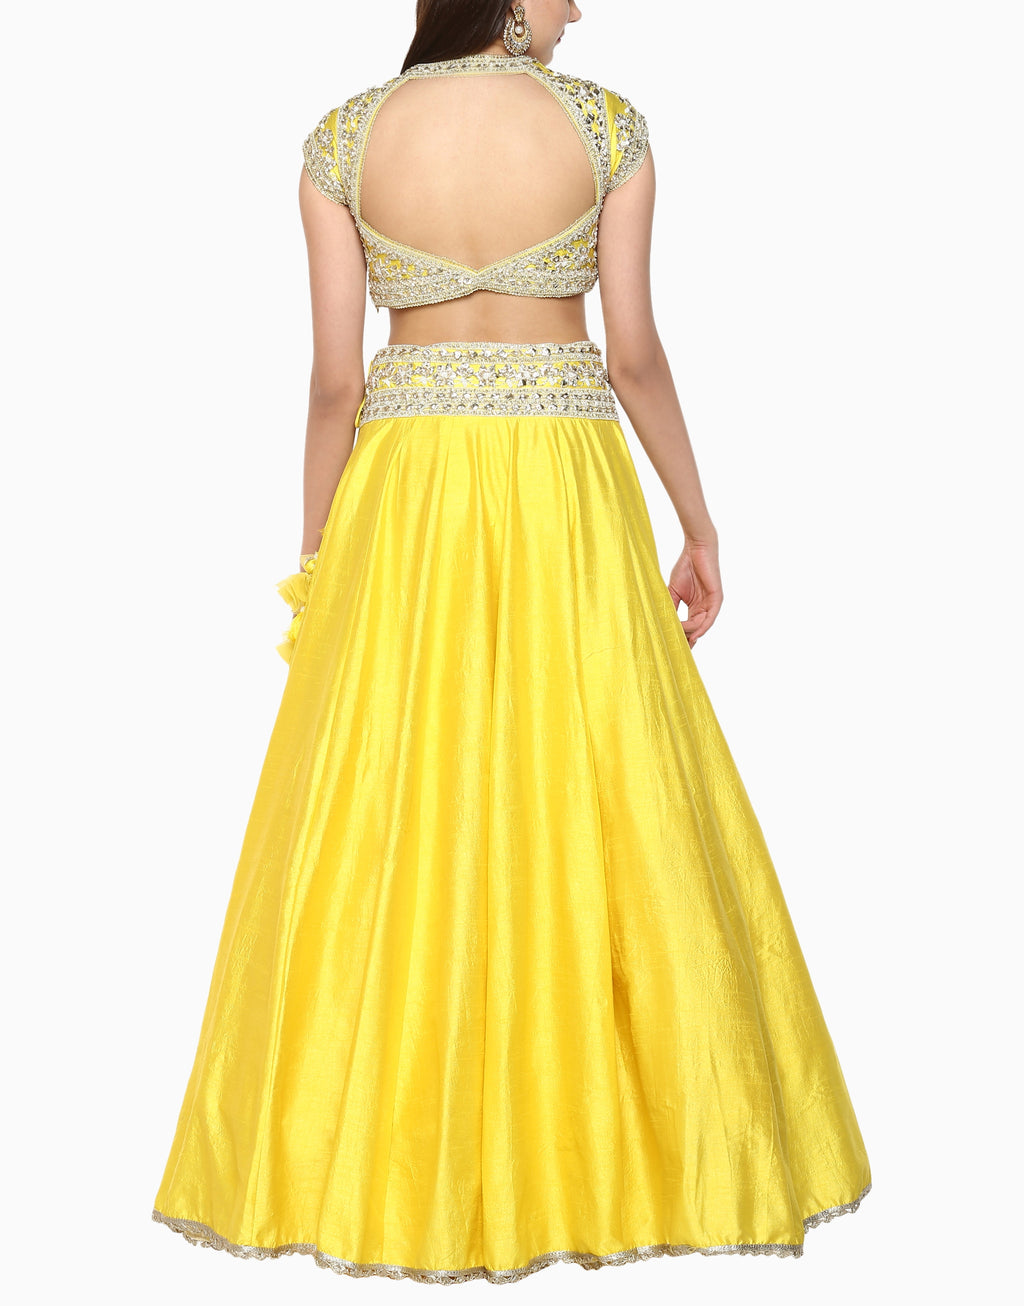 Preeti S Kapoor - Lime Yellow Embroidered Lehenga Set - INDIASPOPUP.COM